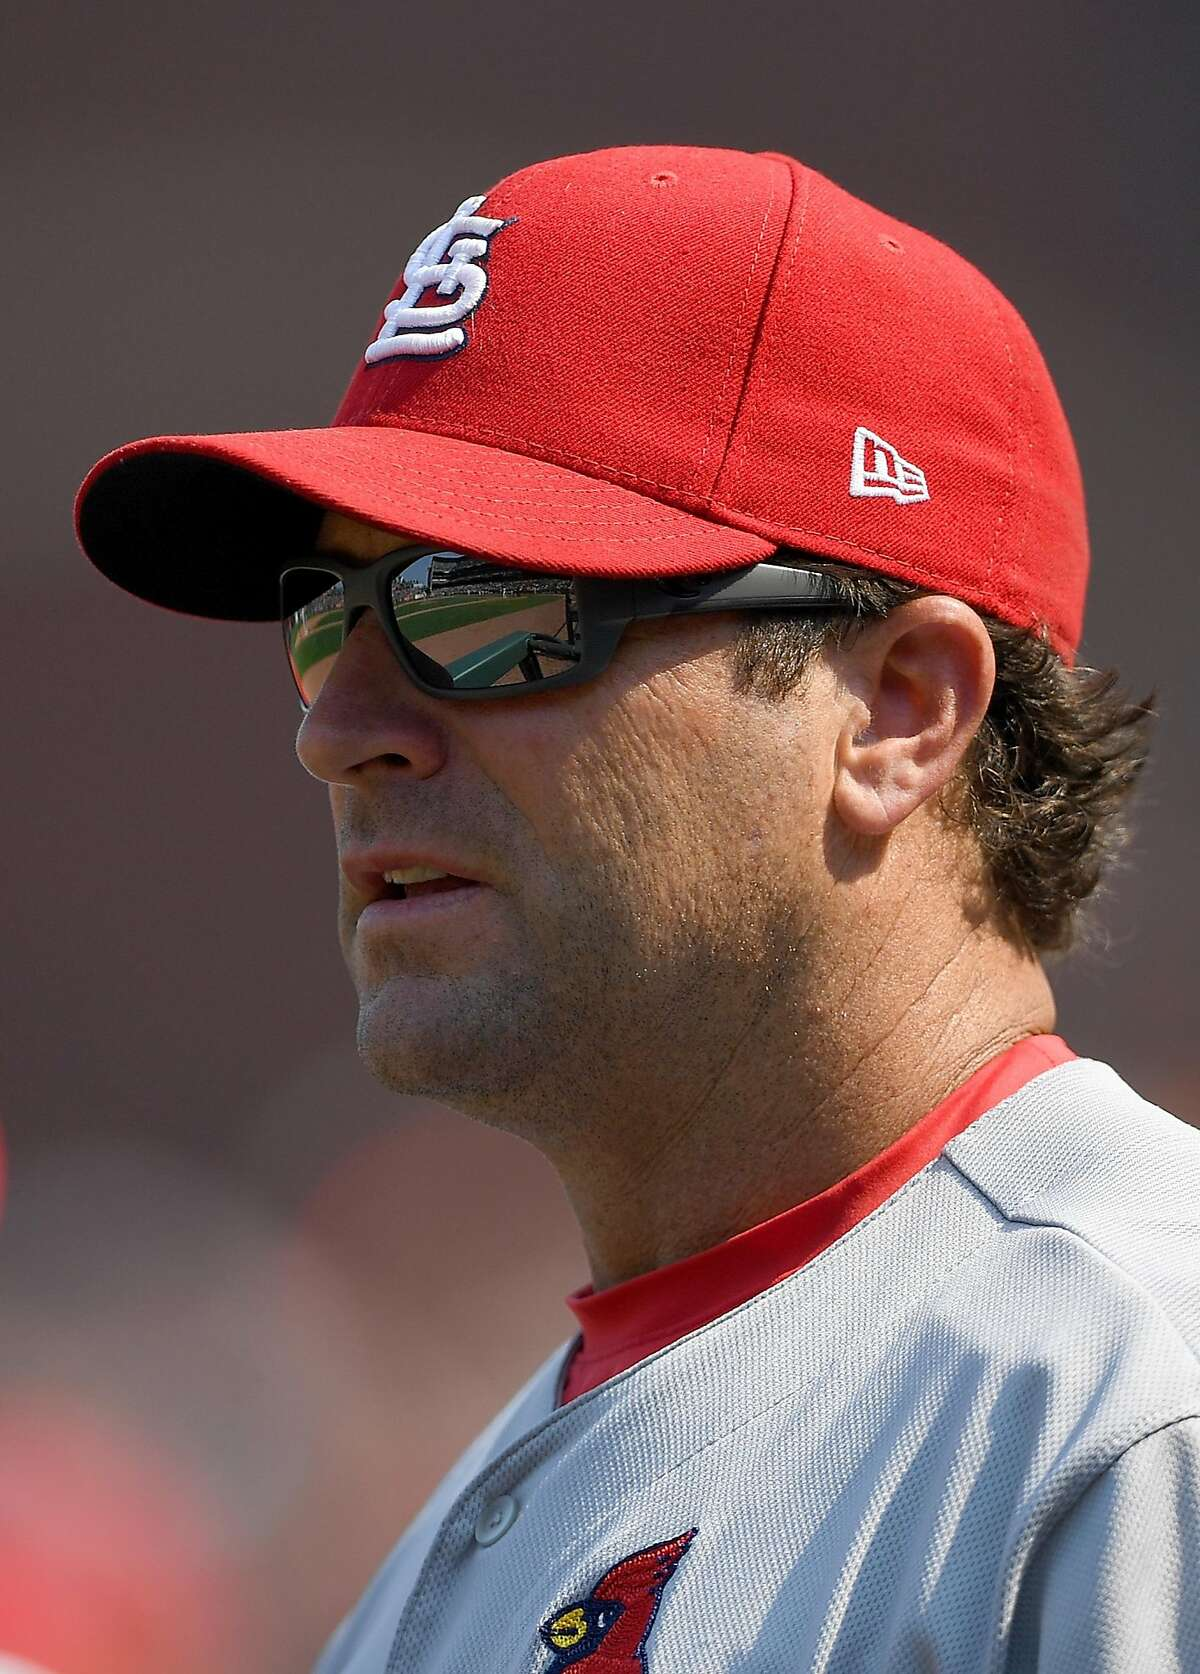 St. Louis Cardinals Manager Mike Matheny.